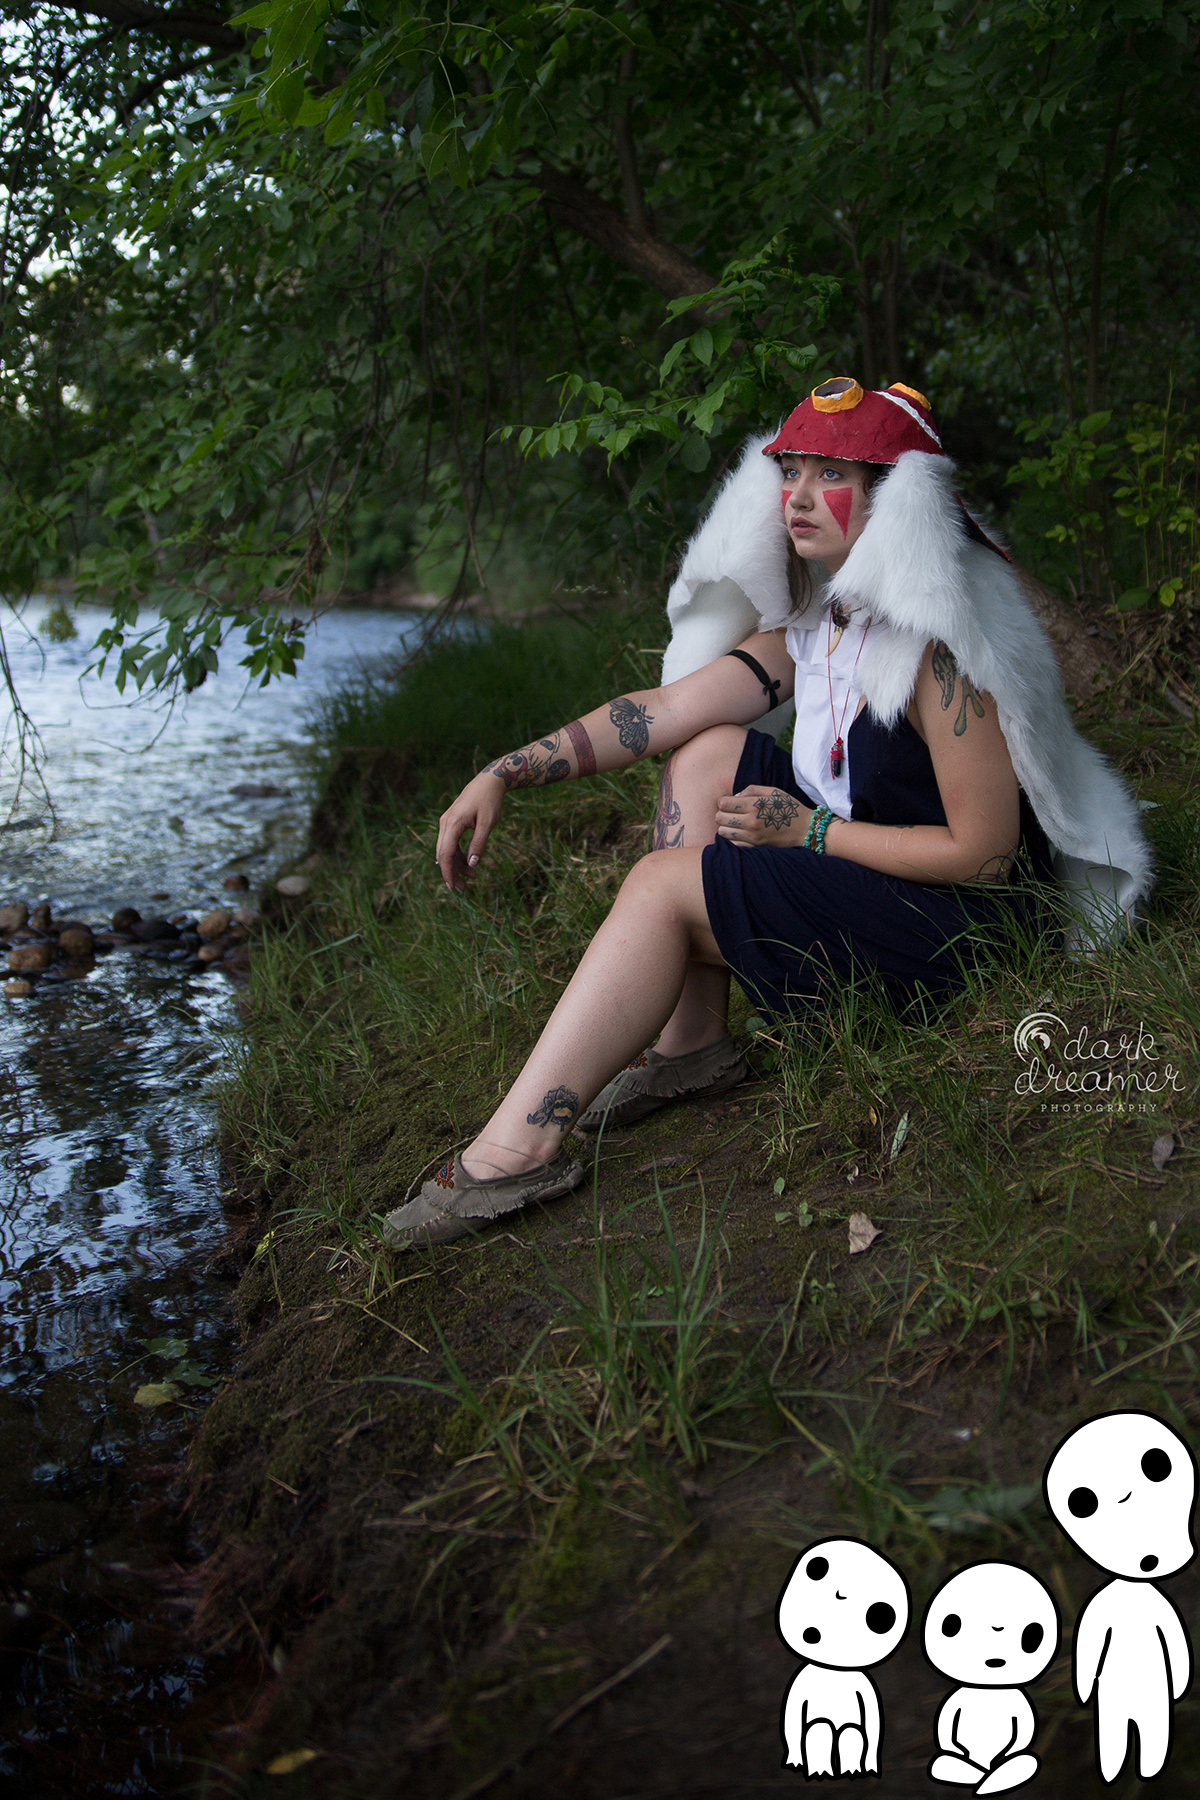 Princess Mononoke Cosplay Photoshoot